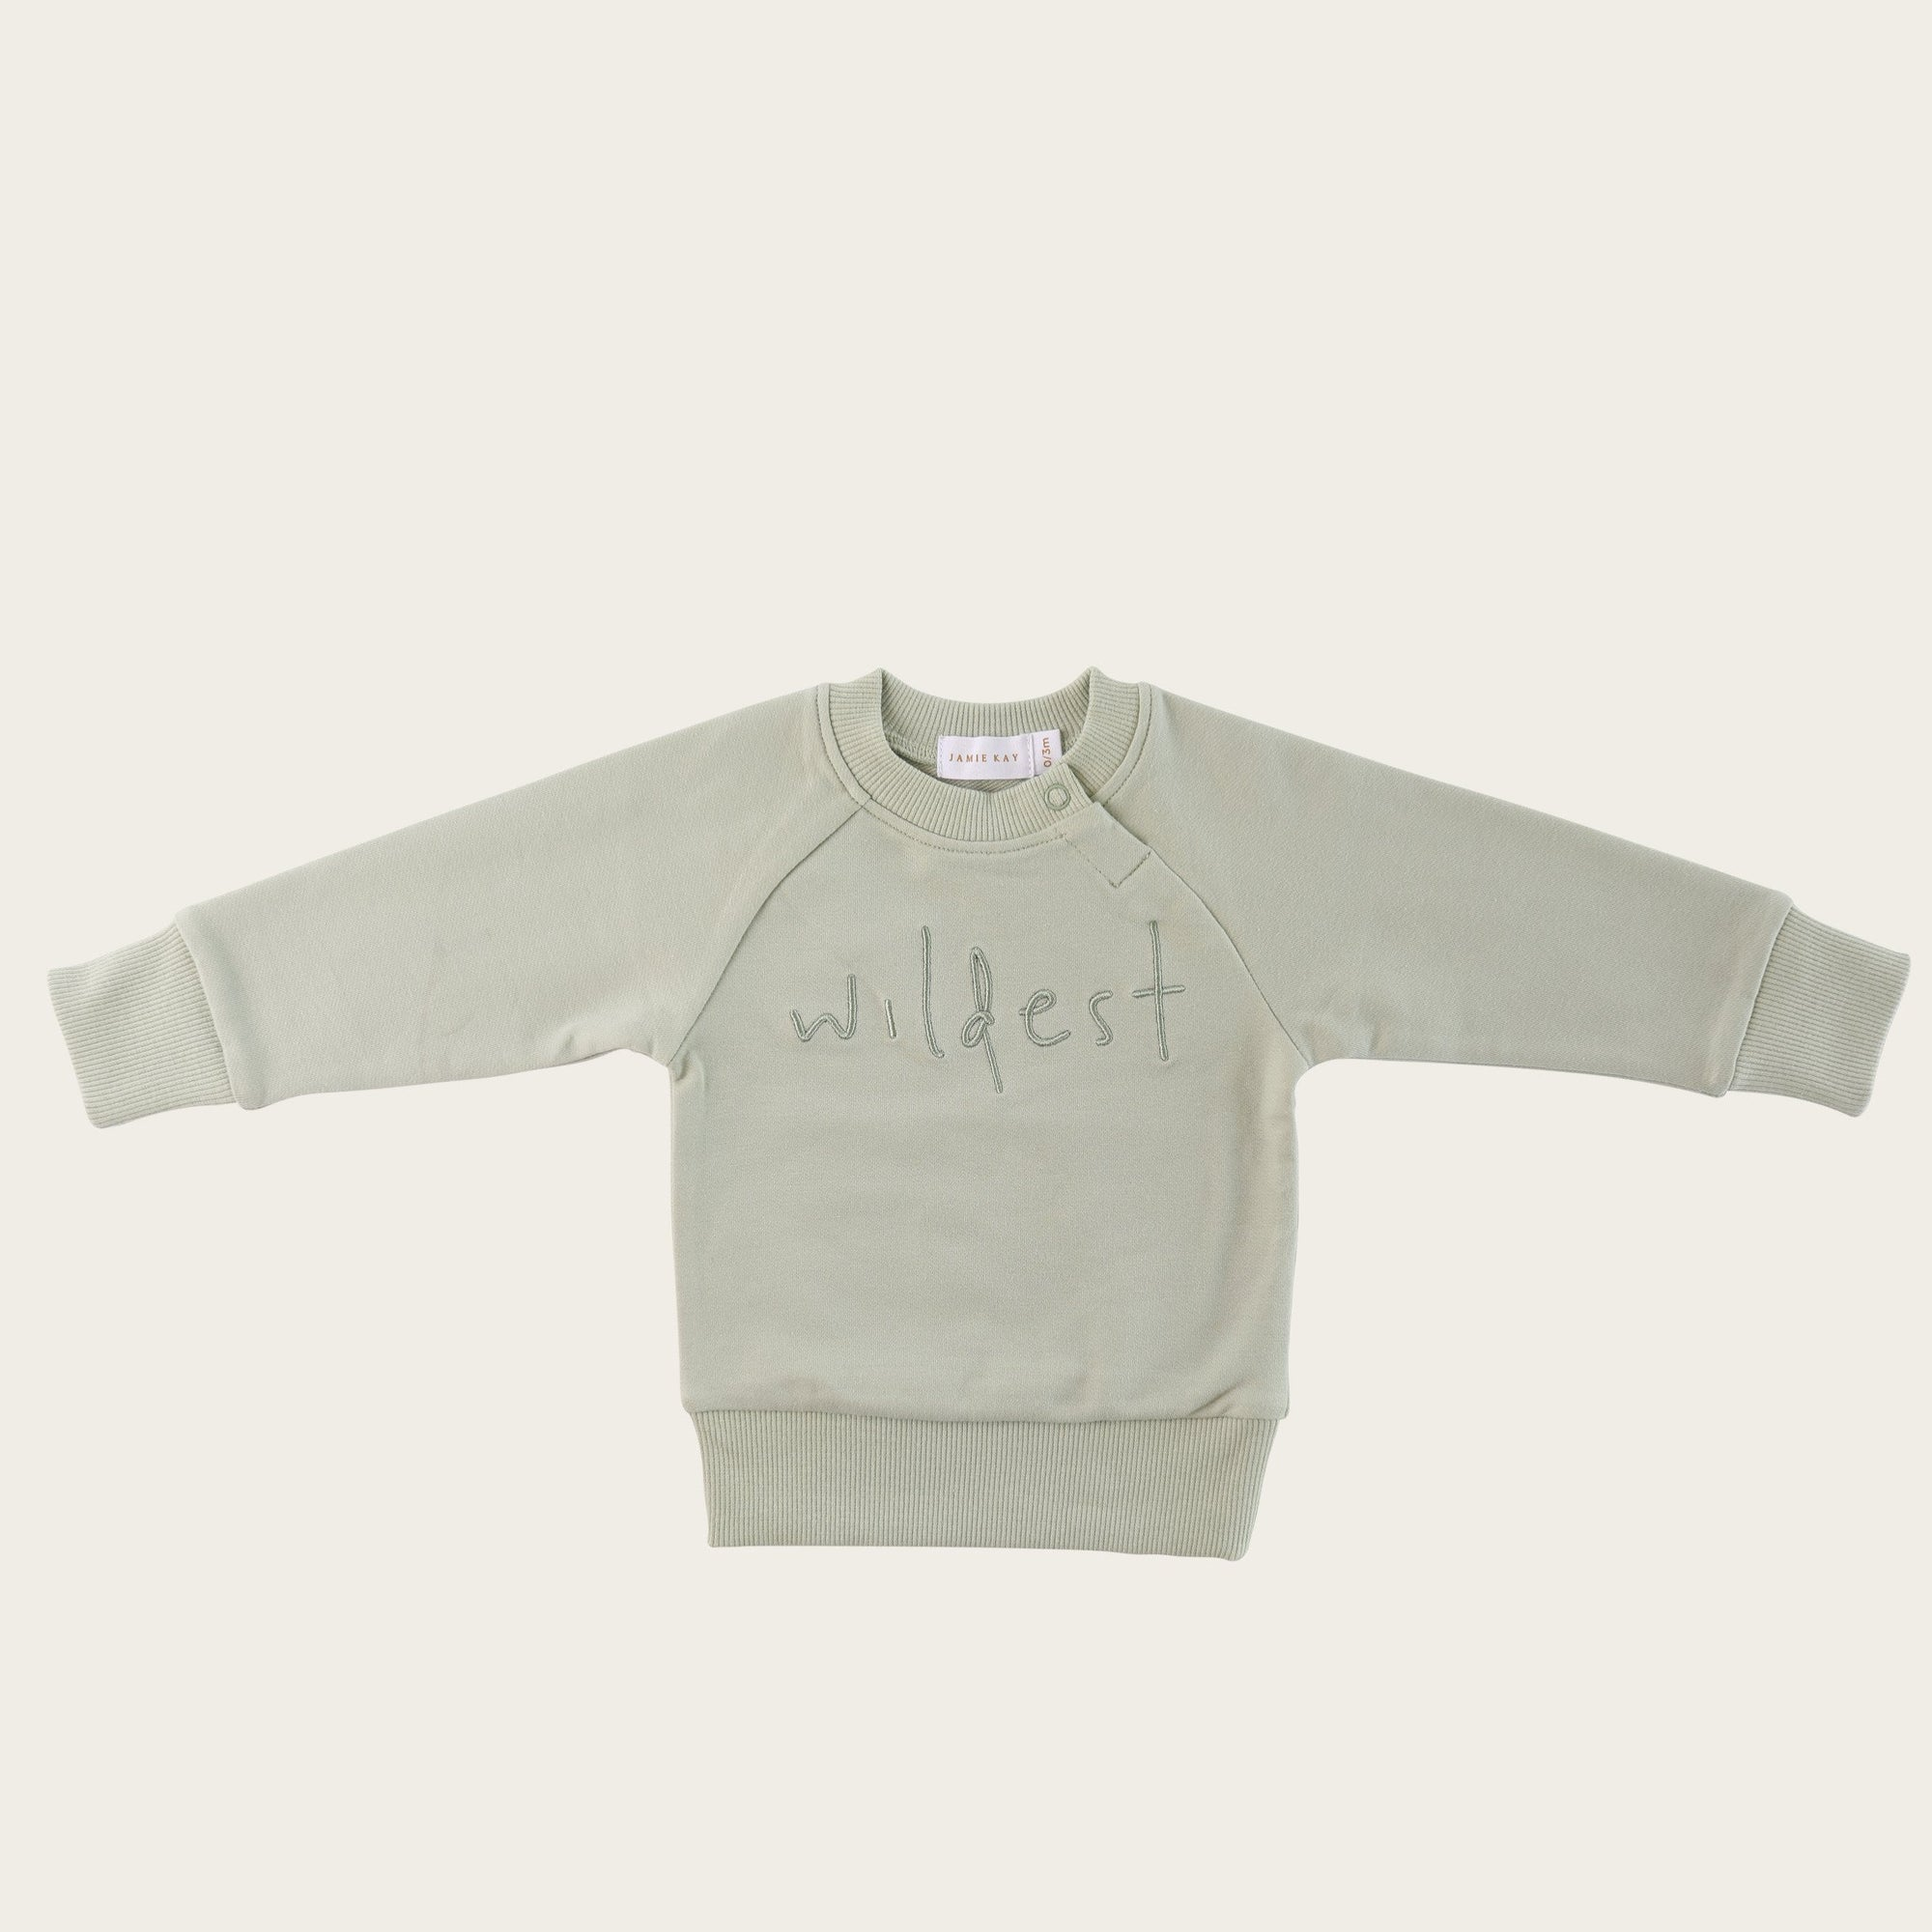 Wildest Sweatshirt (Aqua Grey)